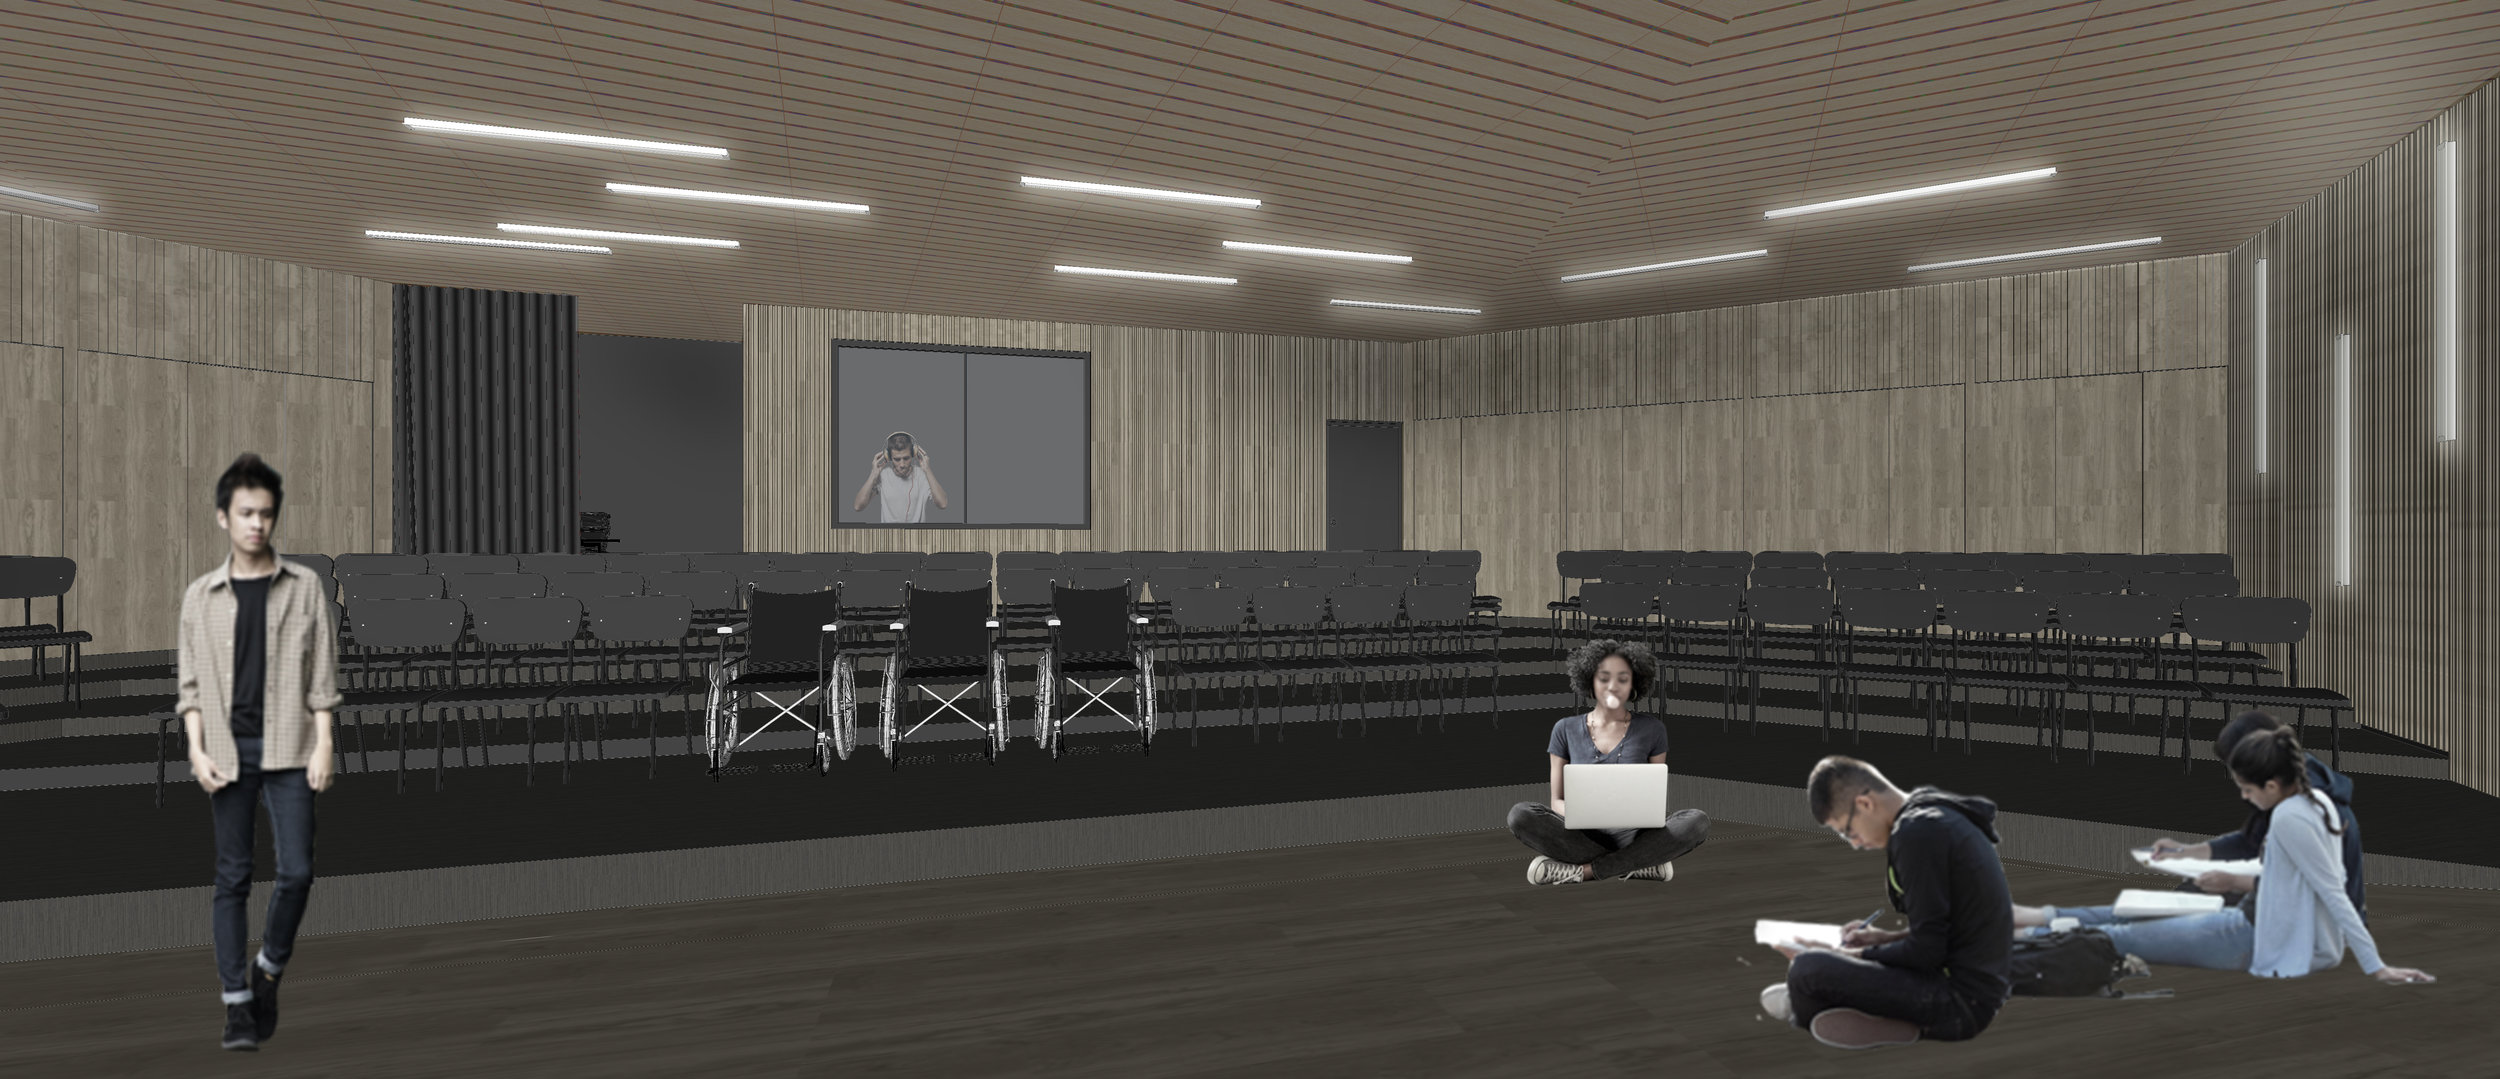 OP High School - Theatre Renovation Option 1 seating.jpg